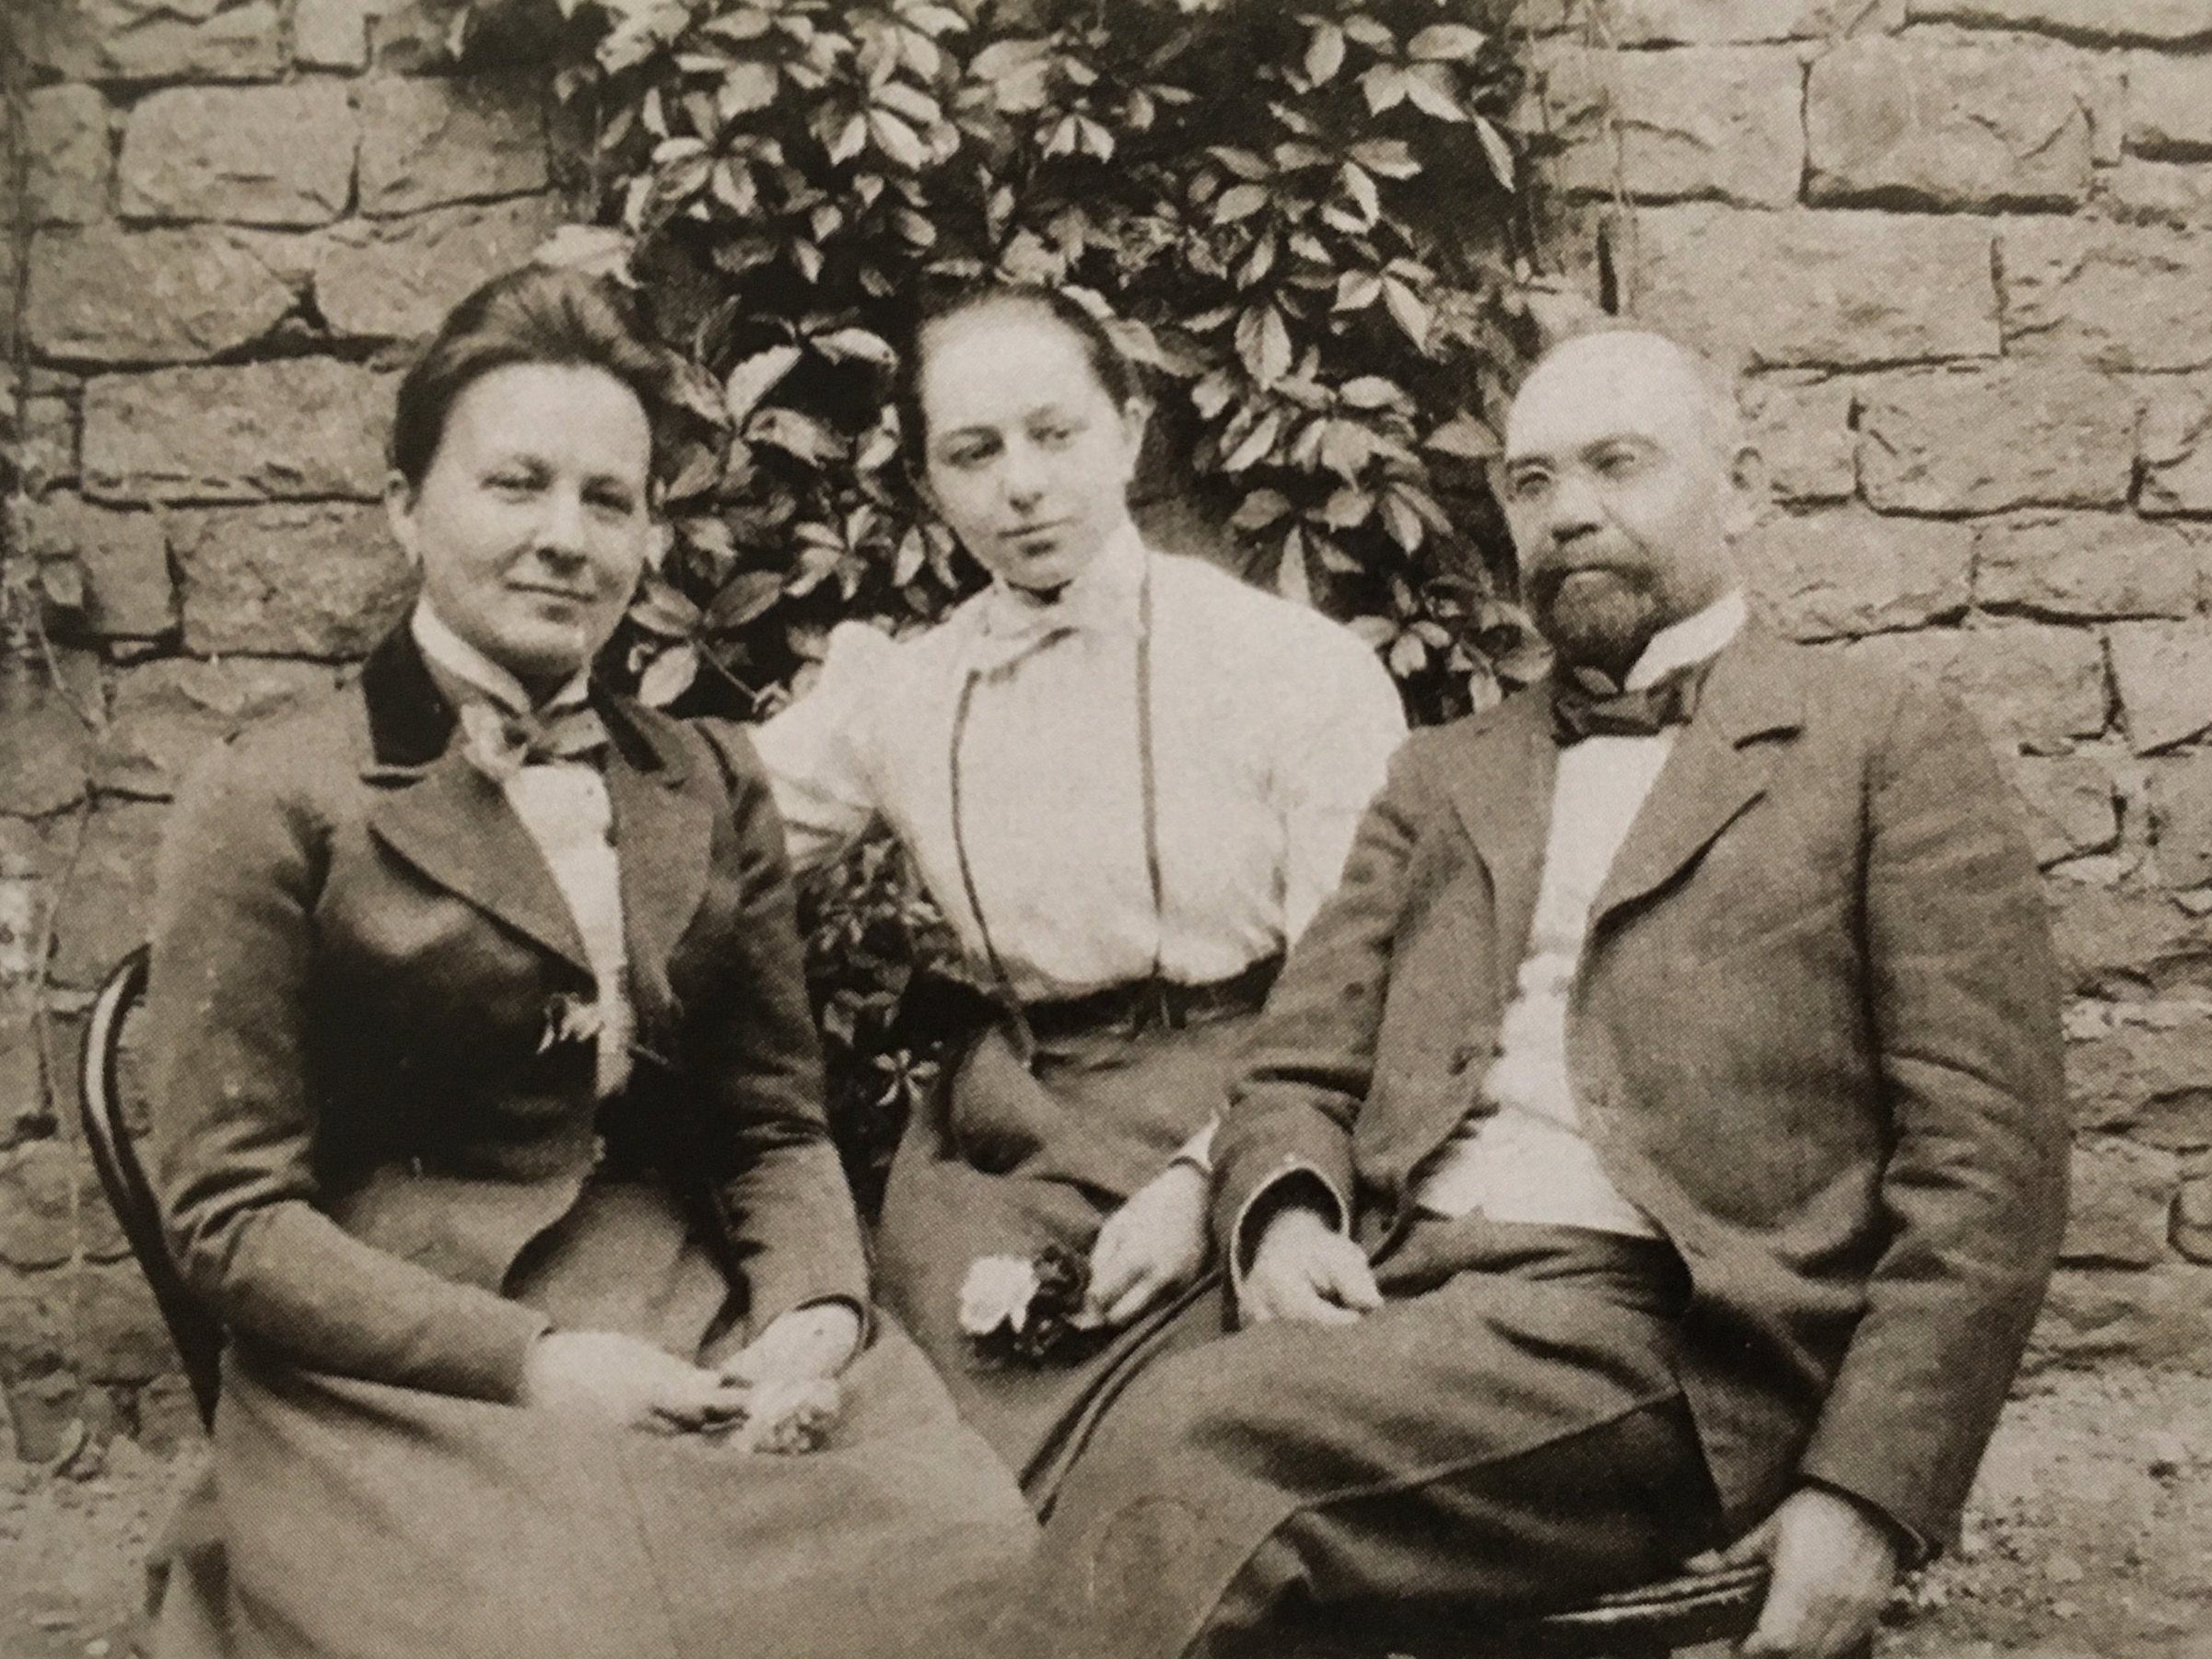 Sonia with her aunt Anna and uncle Henri c. 1900